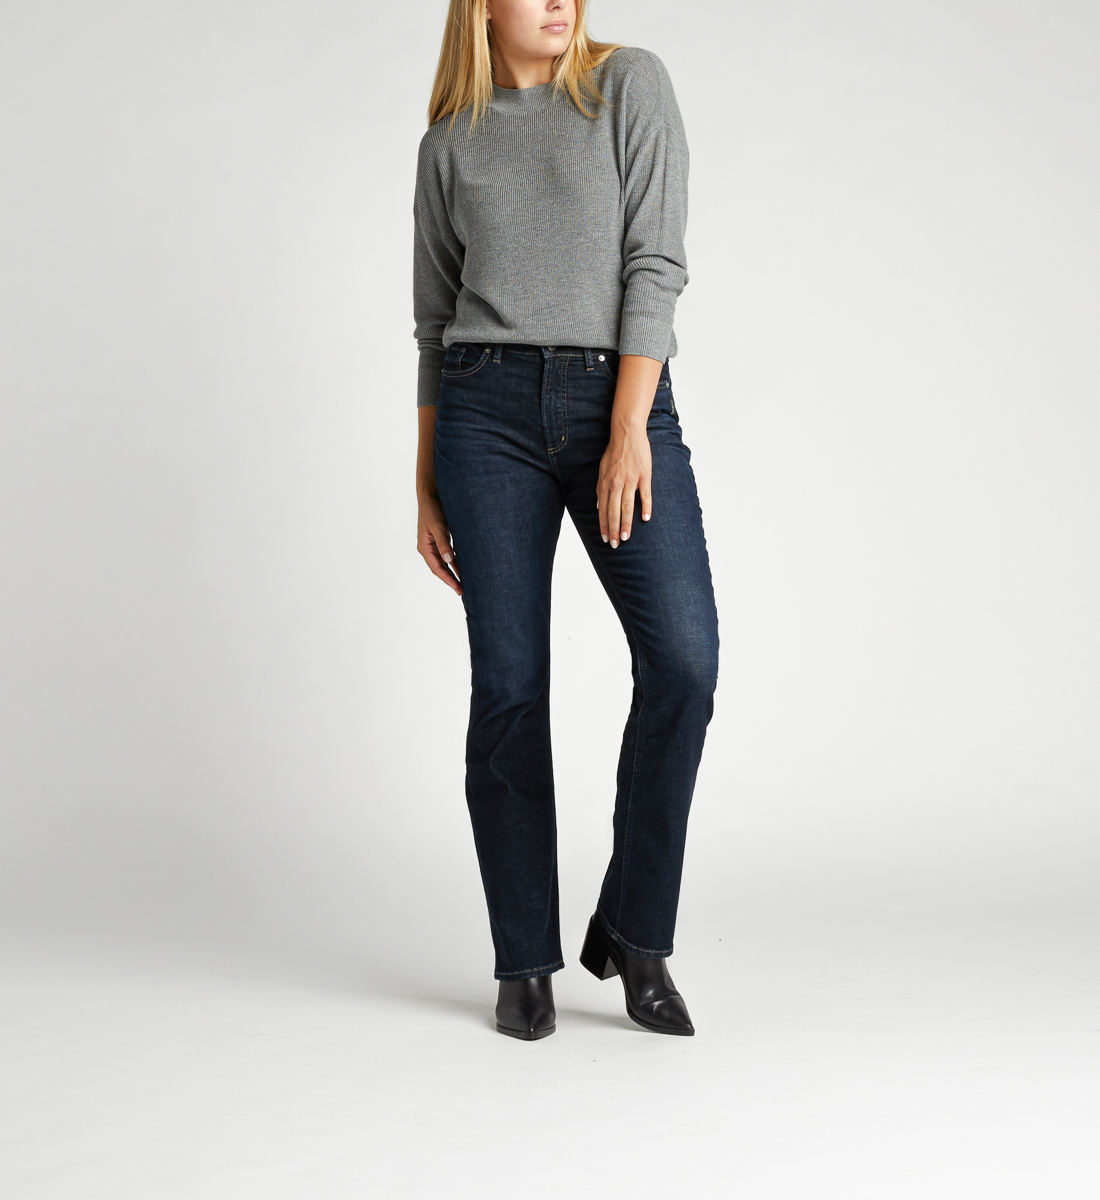 Calley Super High Rise Slim Bootcut Jeans Alt Image 1